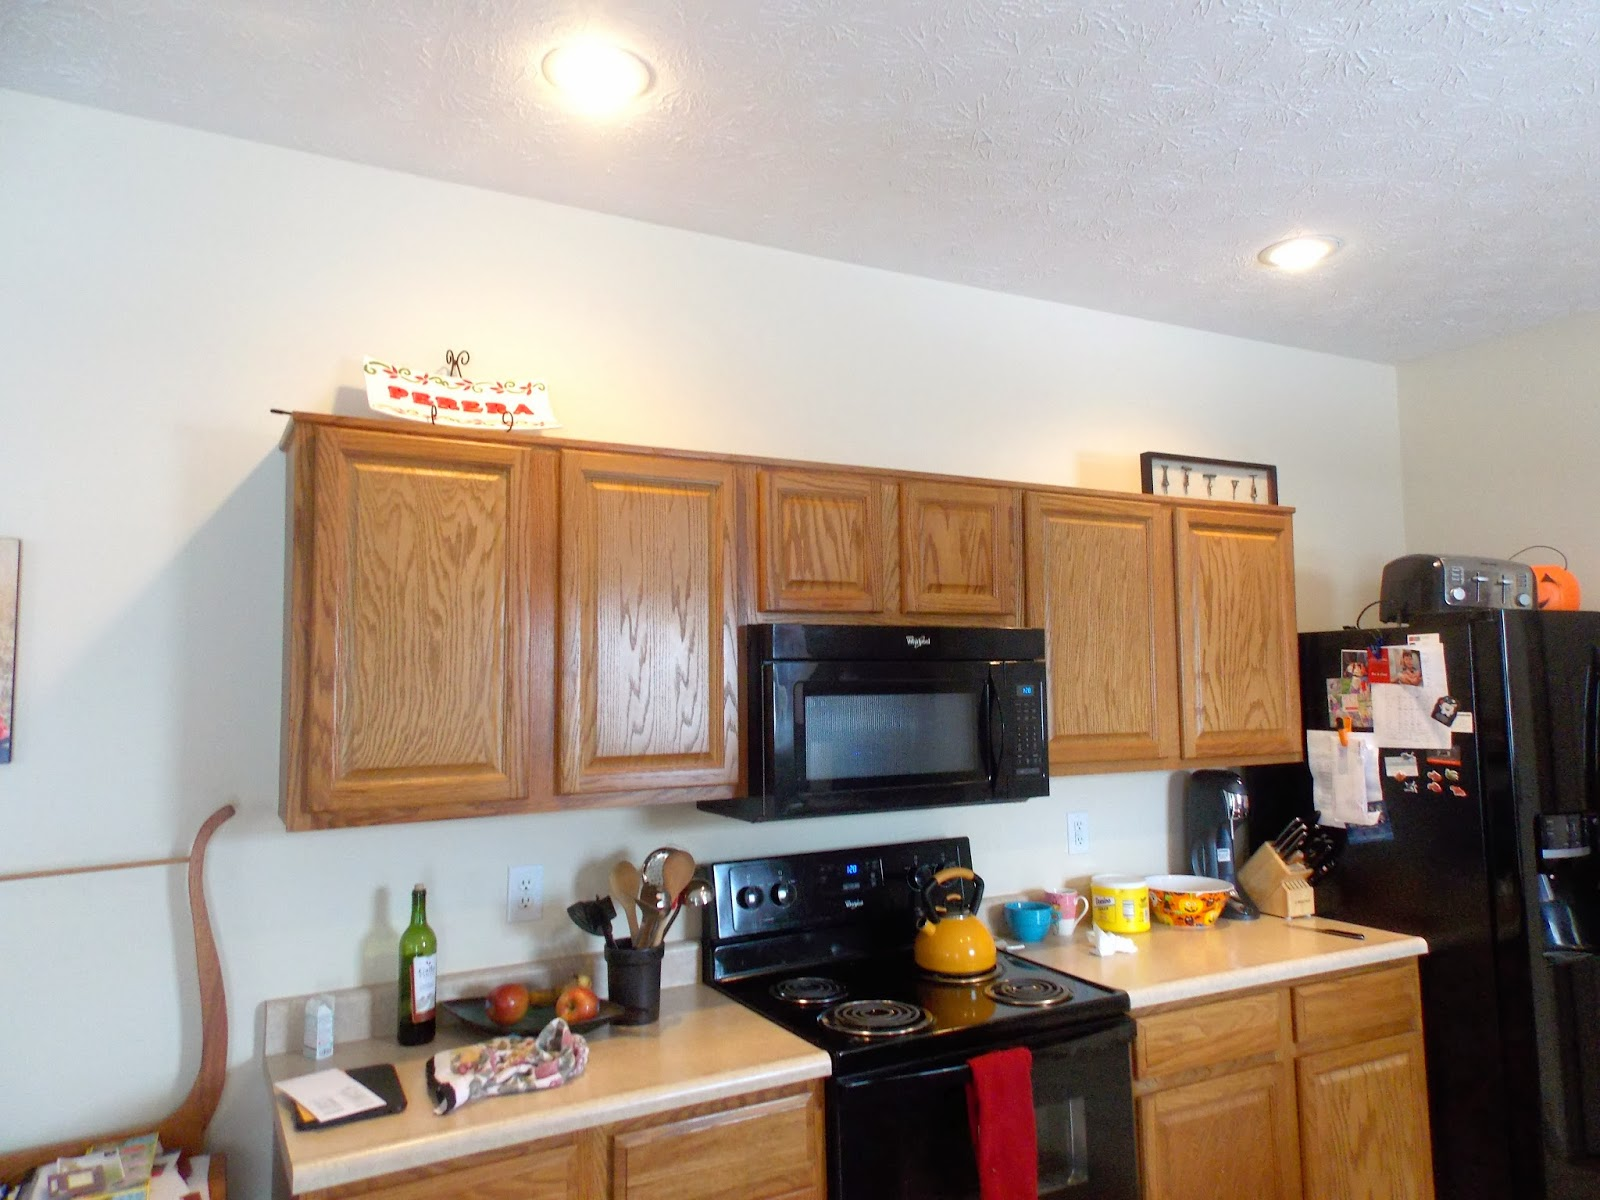 Yes, we painted the cabinets white! What a difference this makes!!